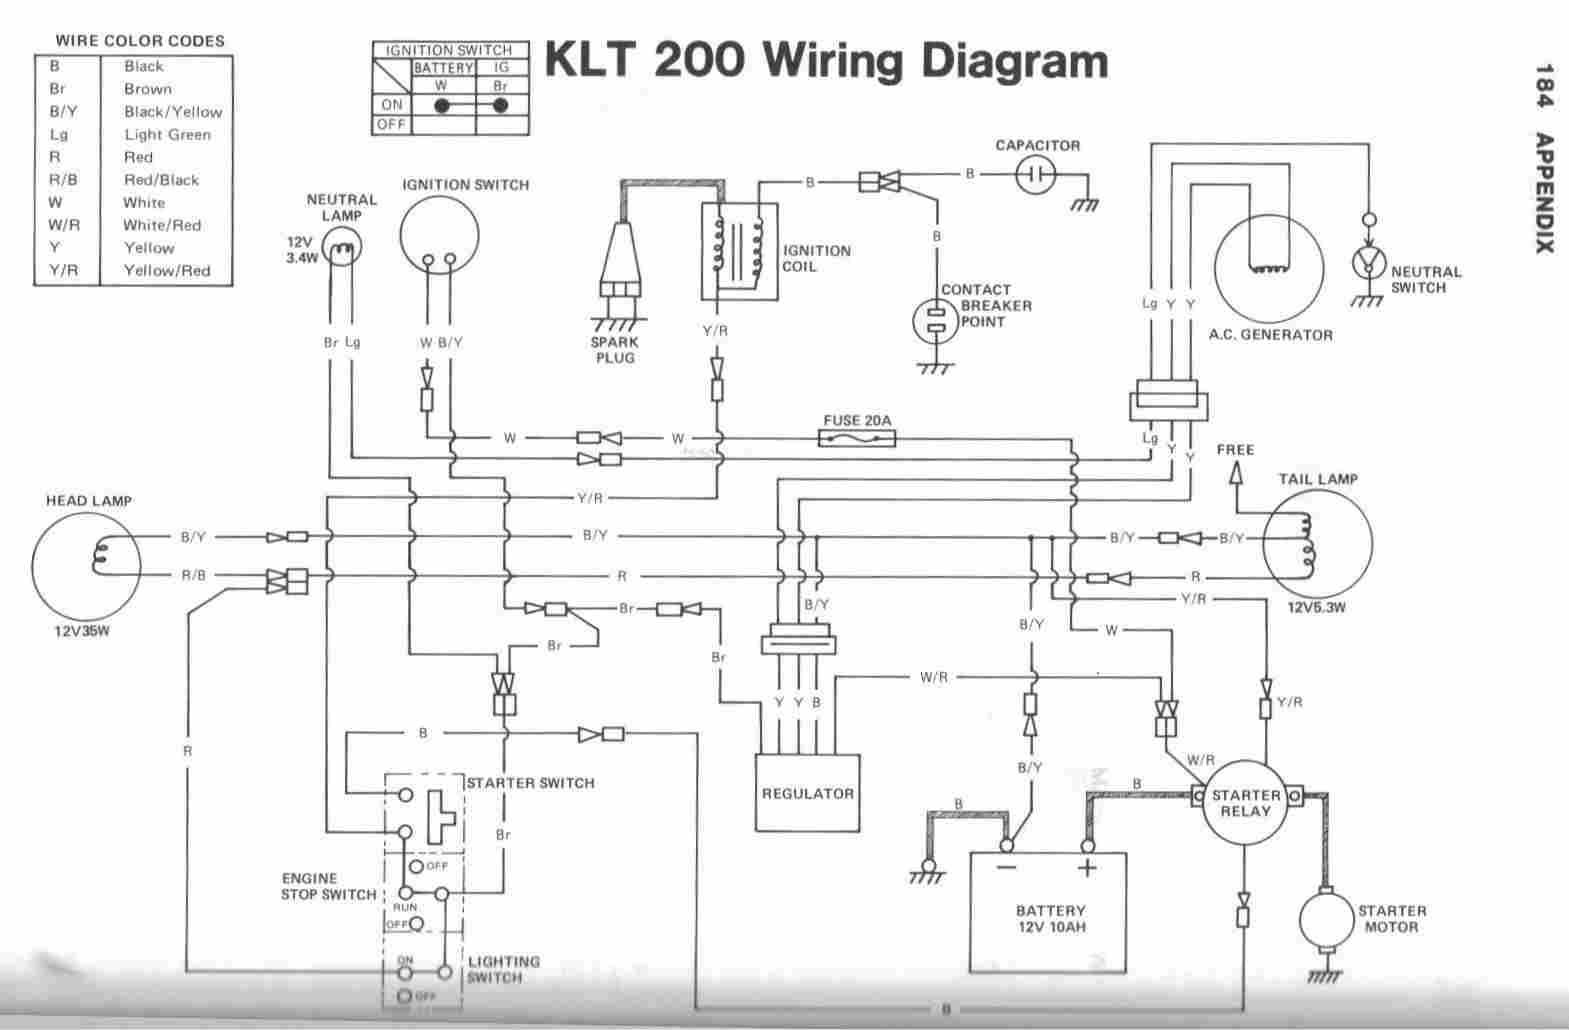 2869034594ce054a636782e5c44b61b4 residential electrical wiring diagrams pdf easy routing cool electrical wiring diagrams at cos-gaming.co